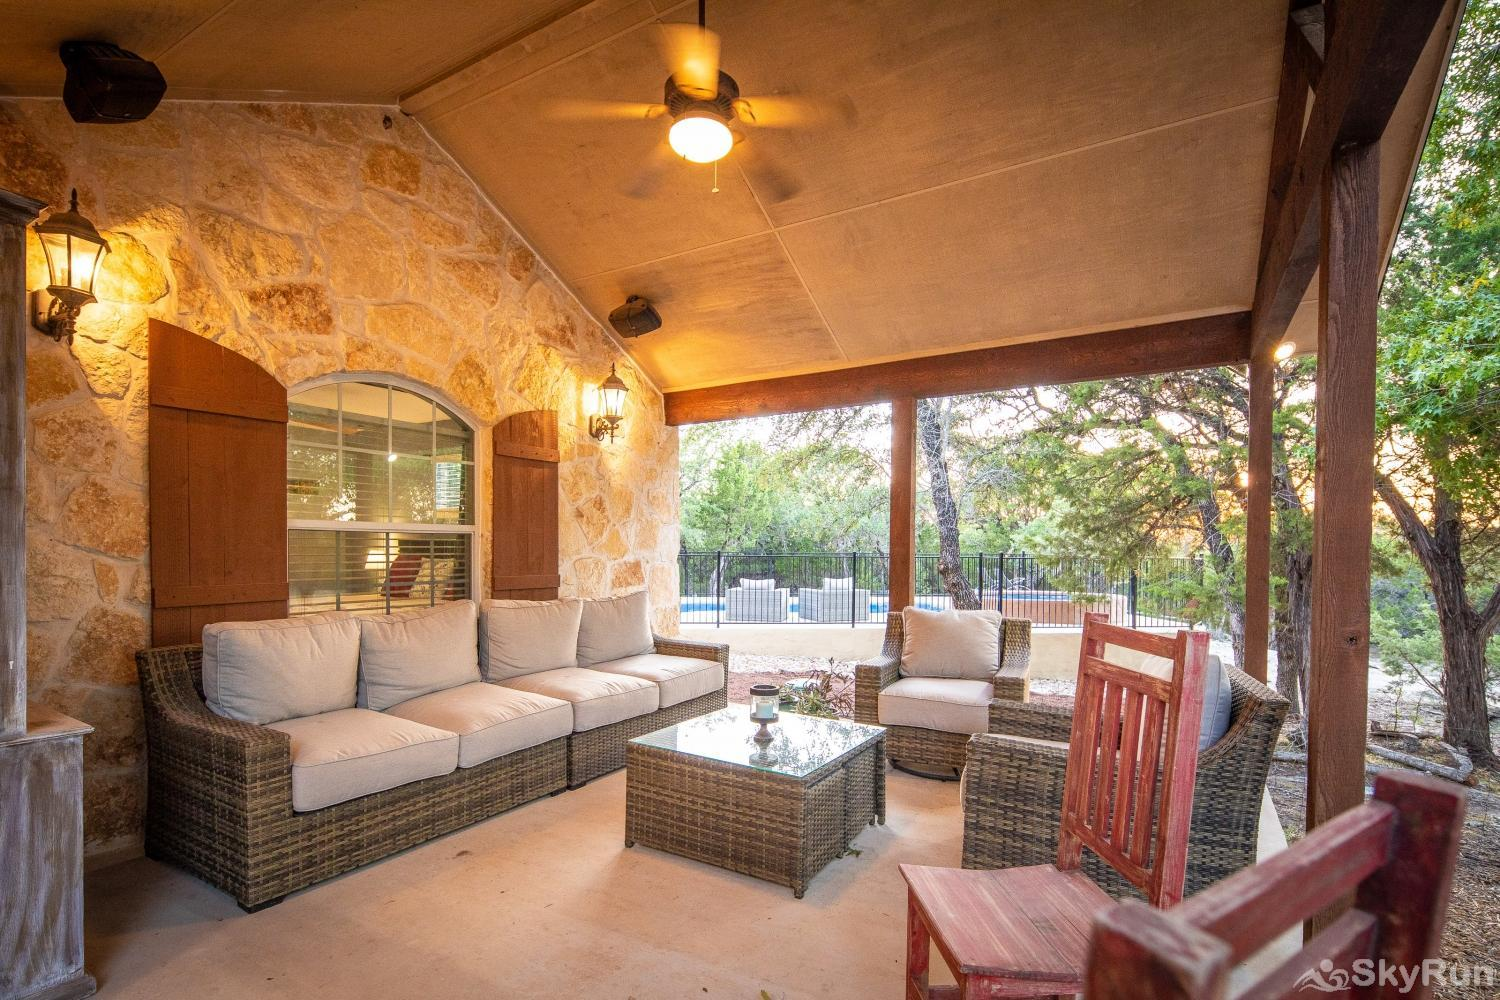 HAYS HIDEOUT Large, covered front porch with outdoor living furniture